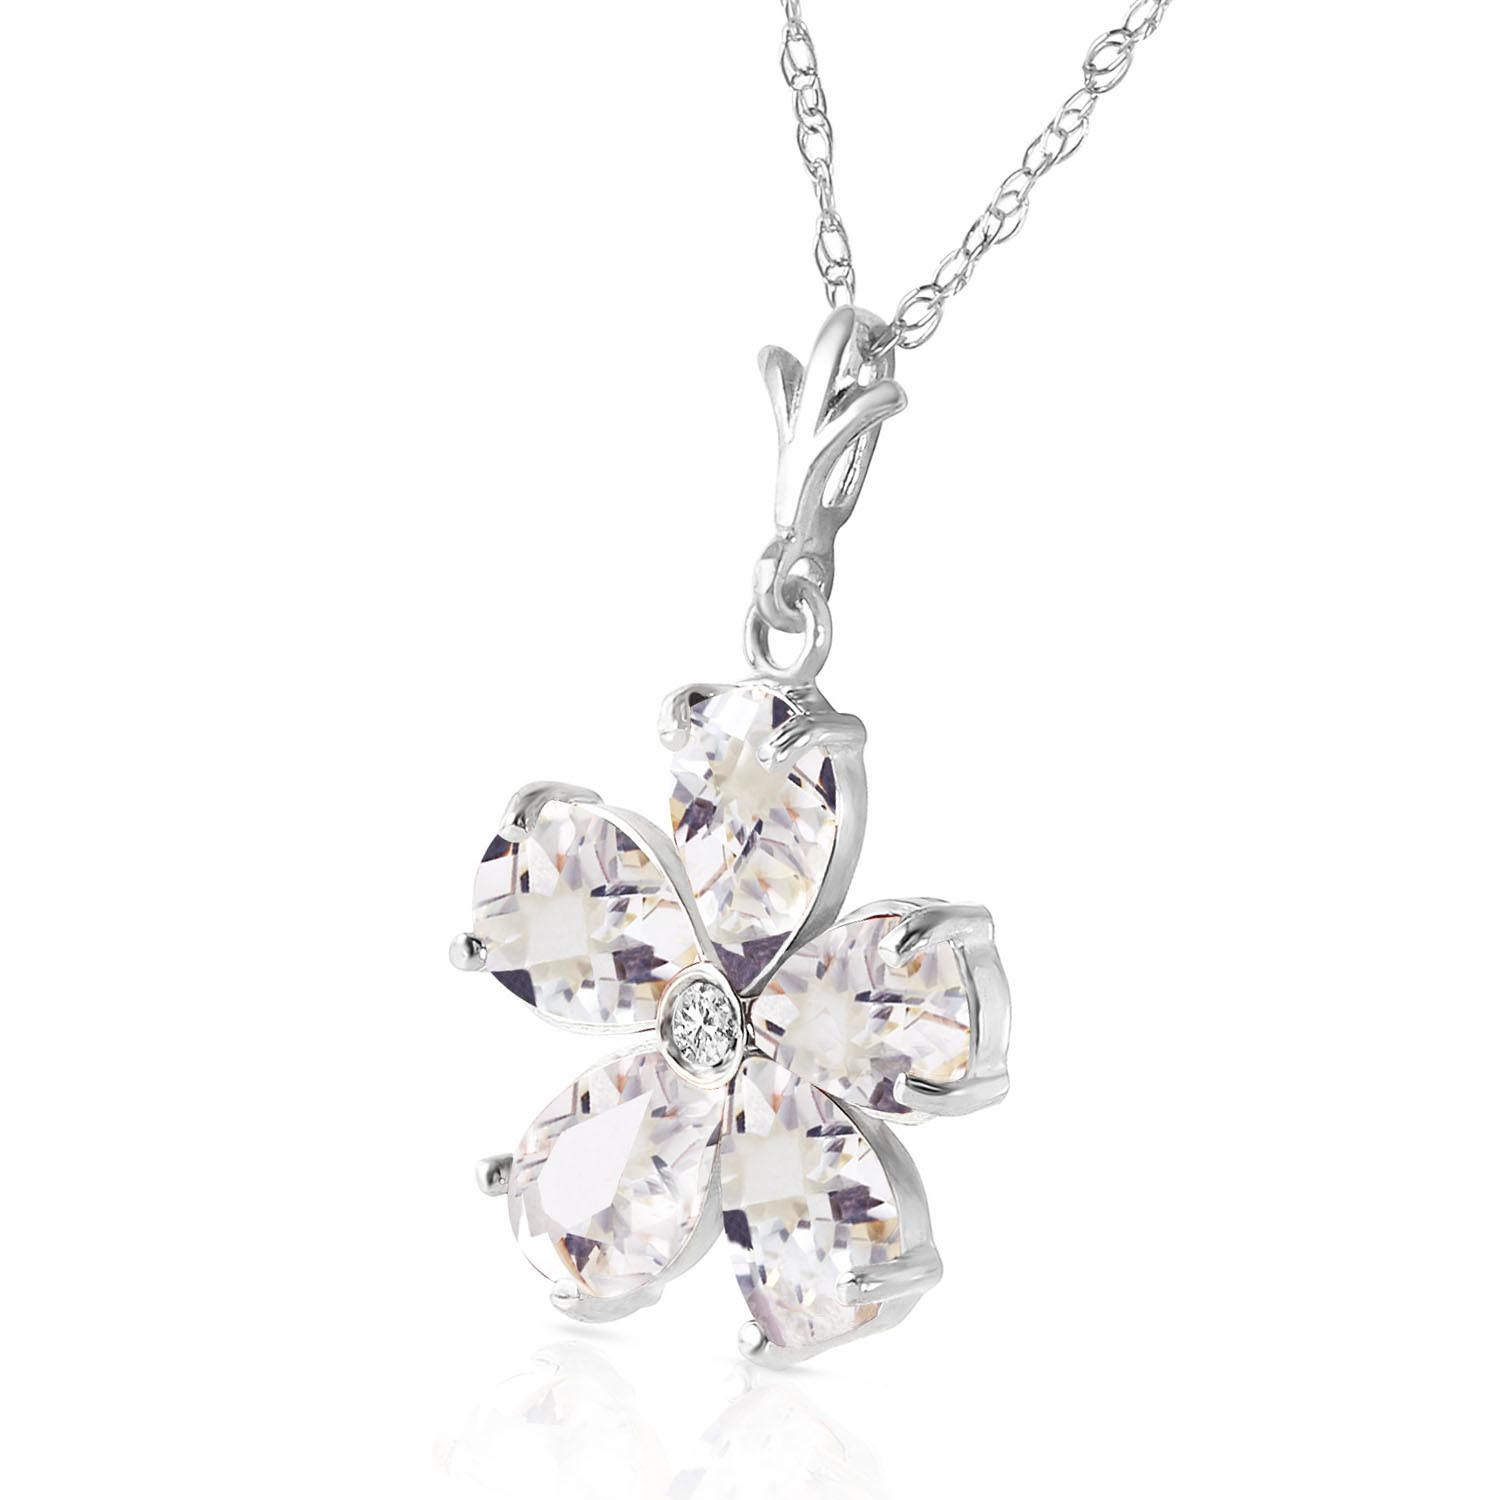 White Topaz and Diamond Flower Petal Pendant Necklace 2.2ctw in 9ct White Gold